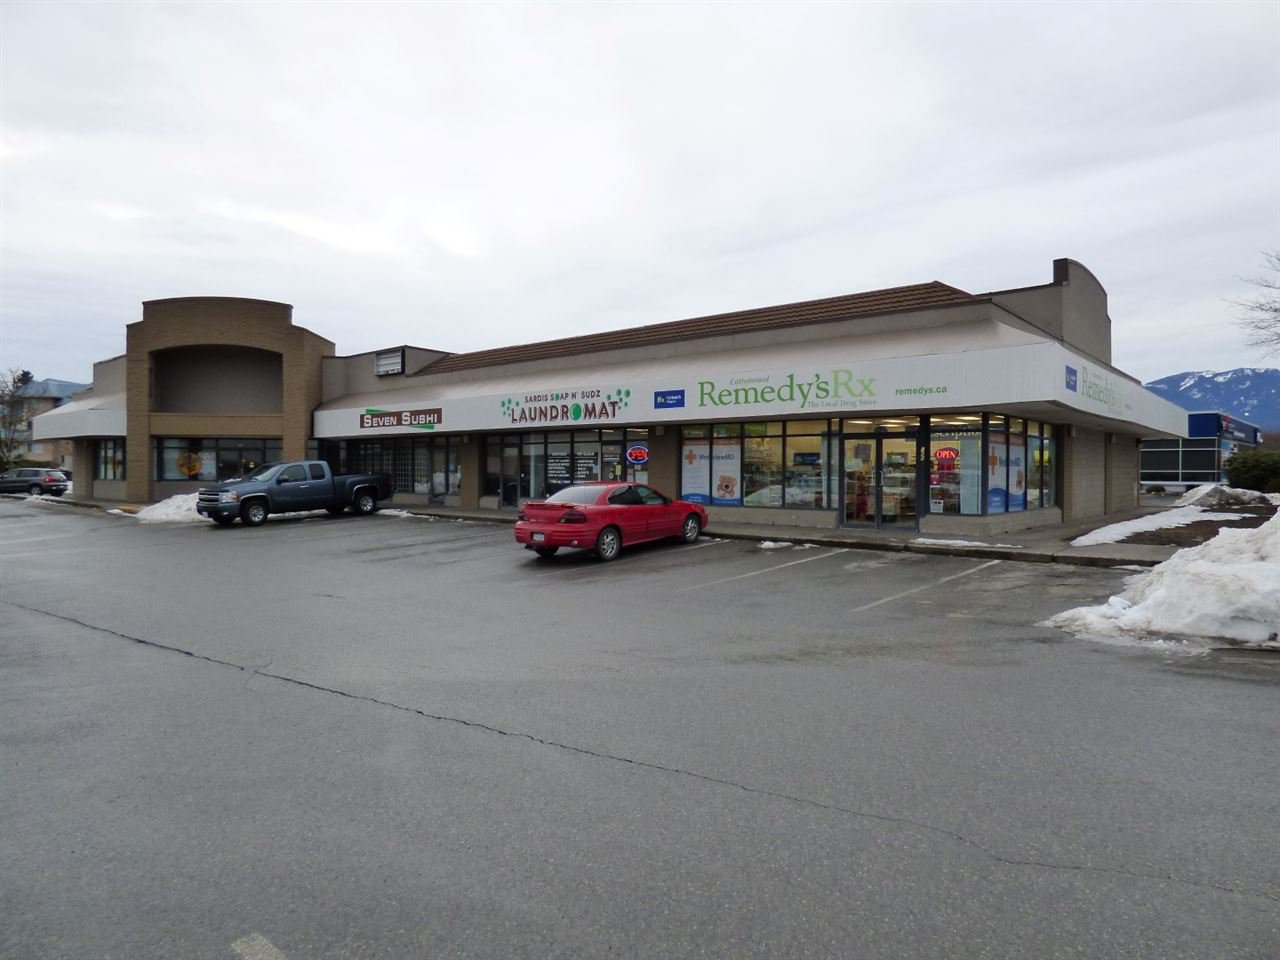 Main Photo: 45428 LUCKAKUCK Way in Chilliwack: Sardis West Vedder Rd Retail for sale (Sardis)  : MLS®# C8010304